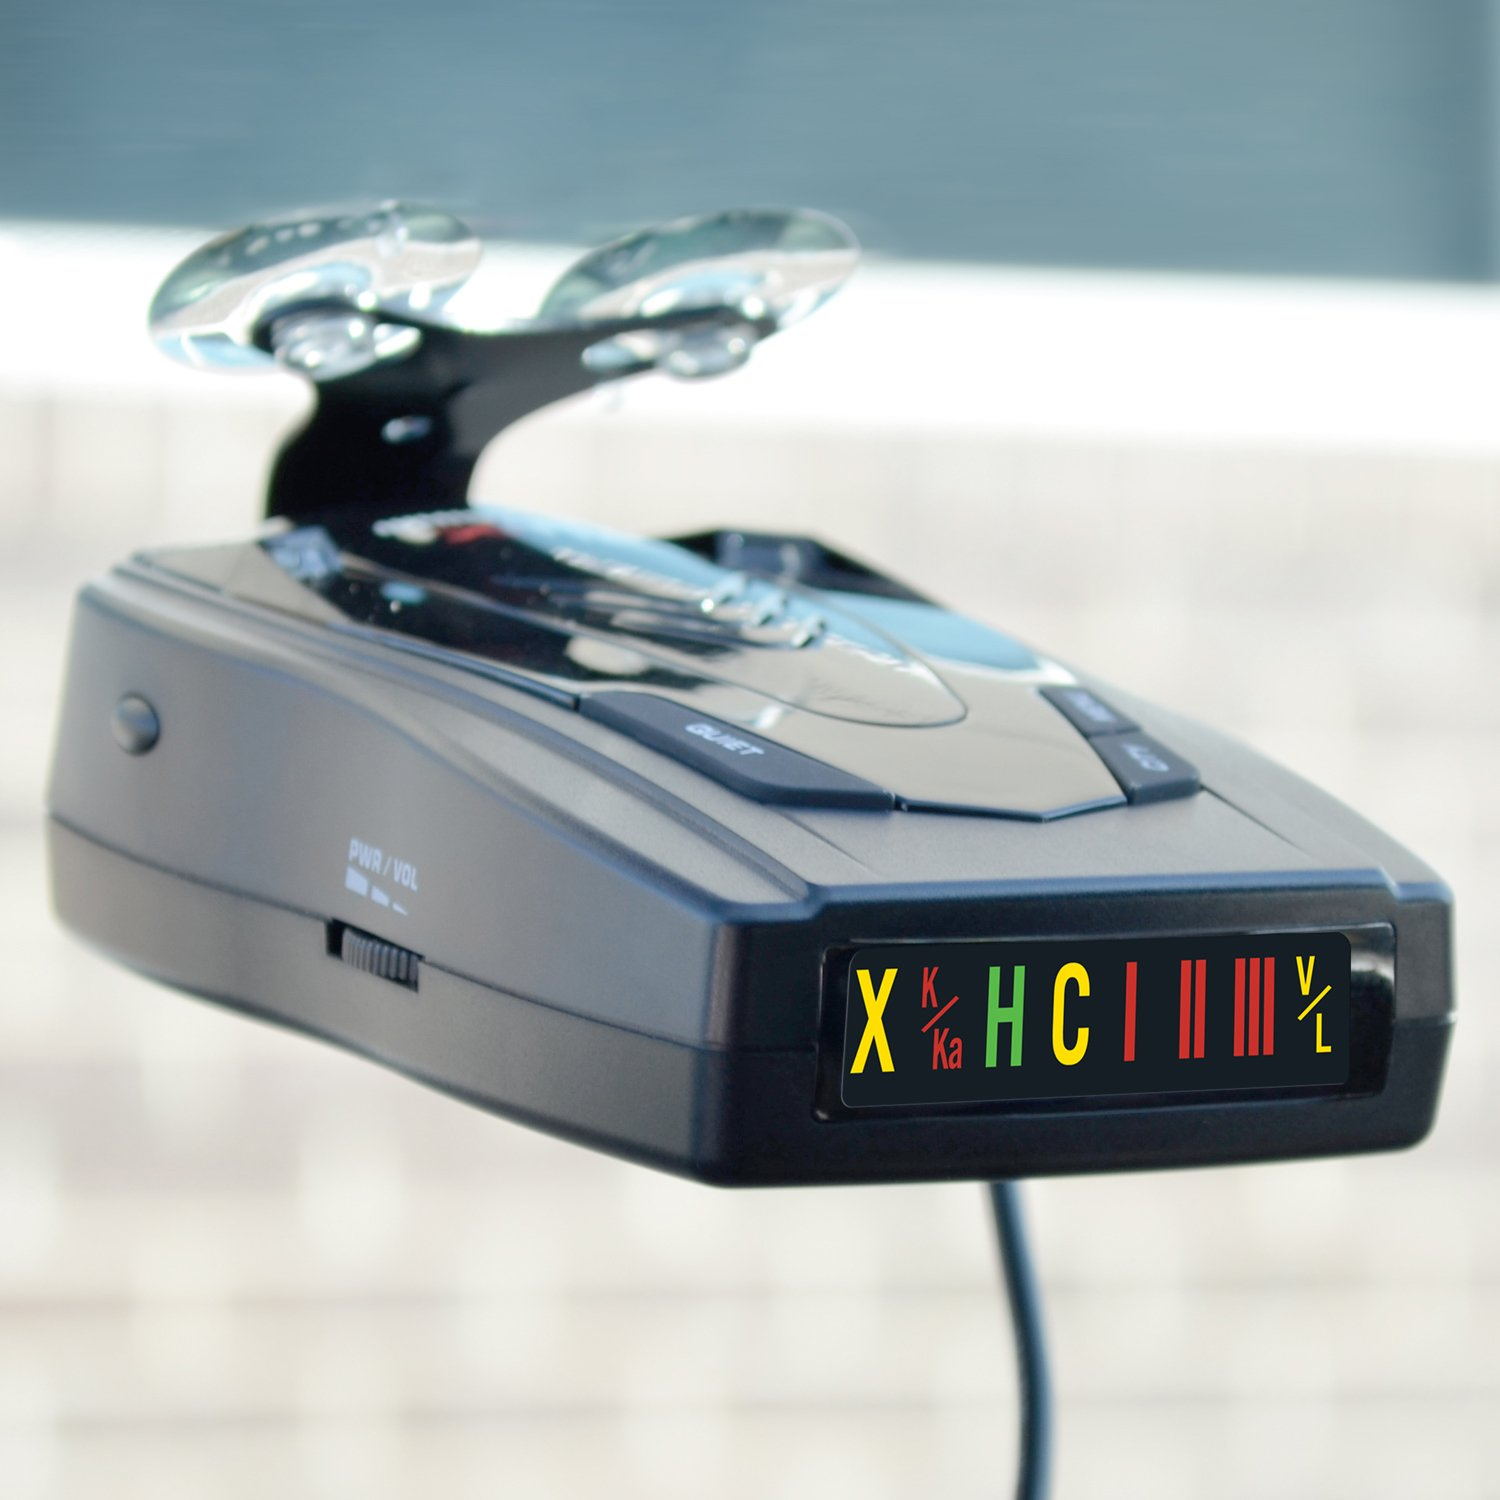 Whistler XTR-145 Laser Radar Detector 360 Degree Protection and Tone Alerts Icon Display